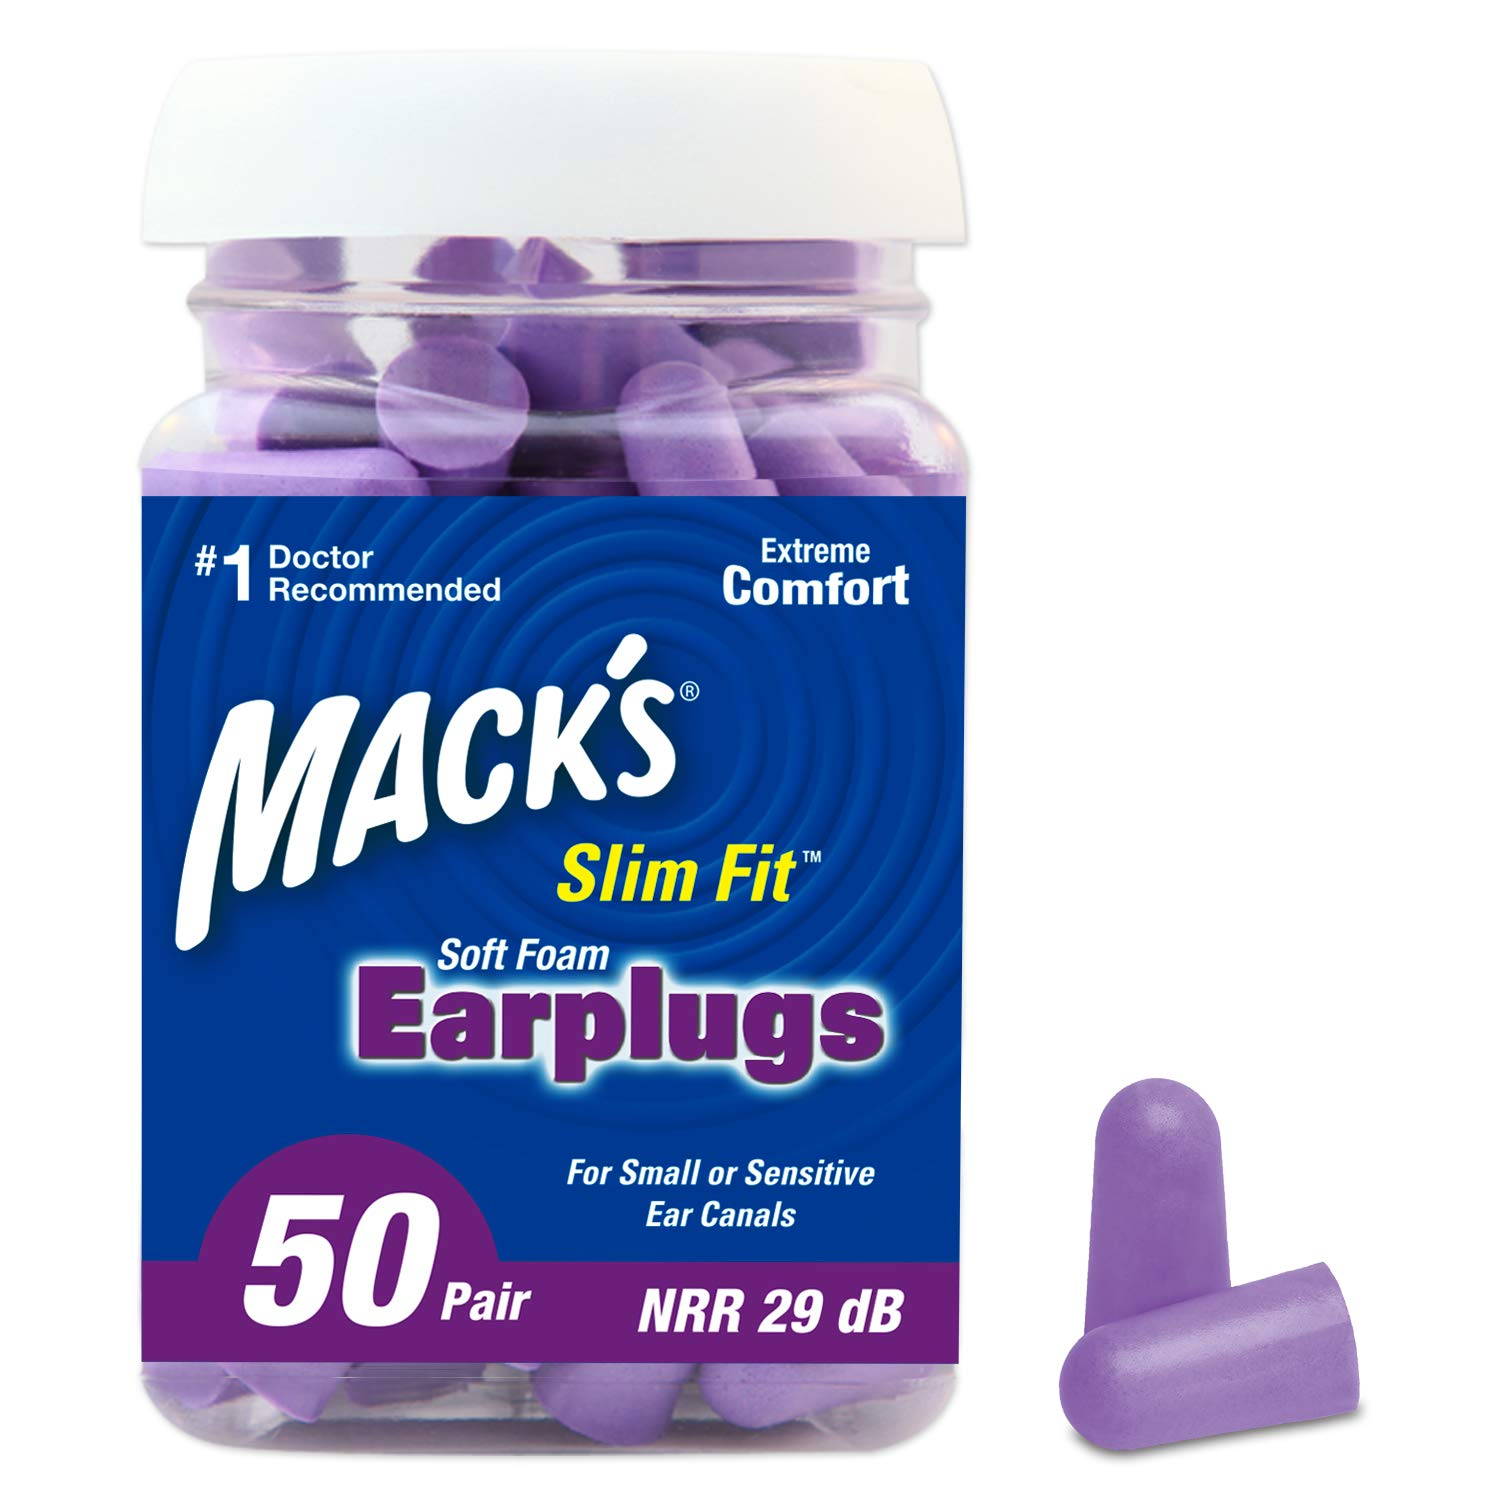 Mack's Slim Fit Soft Foam Earplugs, 50 Pair - Small Ear Plugs for Sleeping, Snoring, Traveling, Concerts, Shooting Sports & Power Tools by Mack's